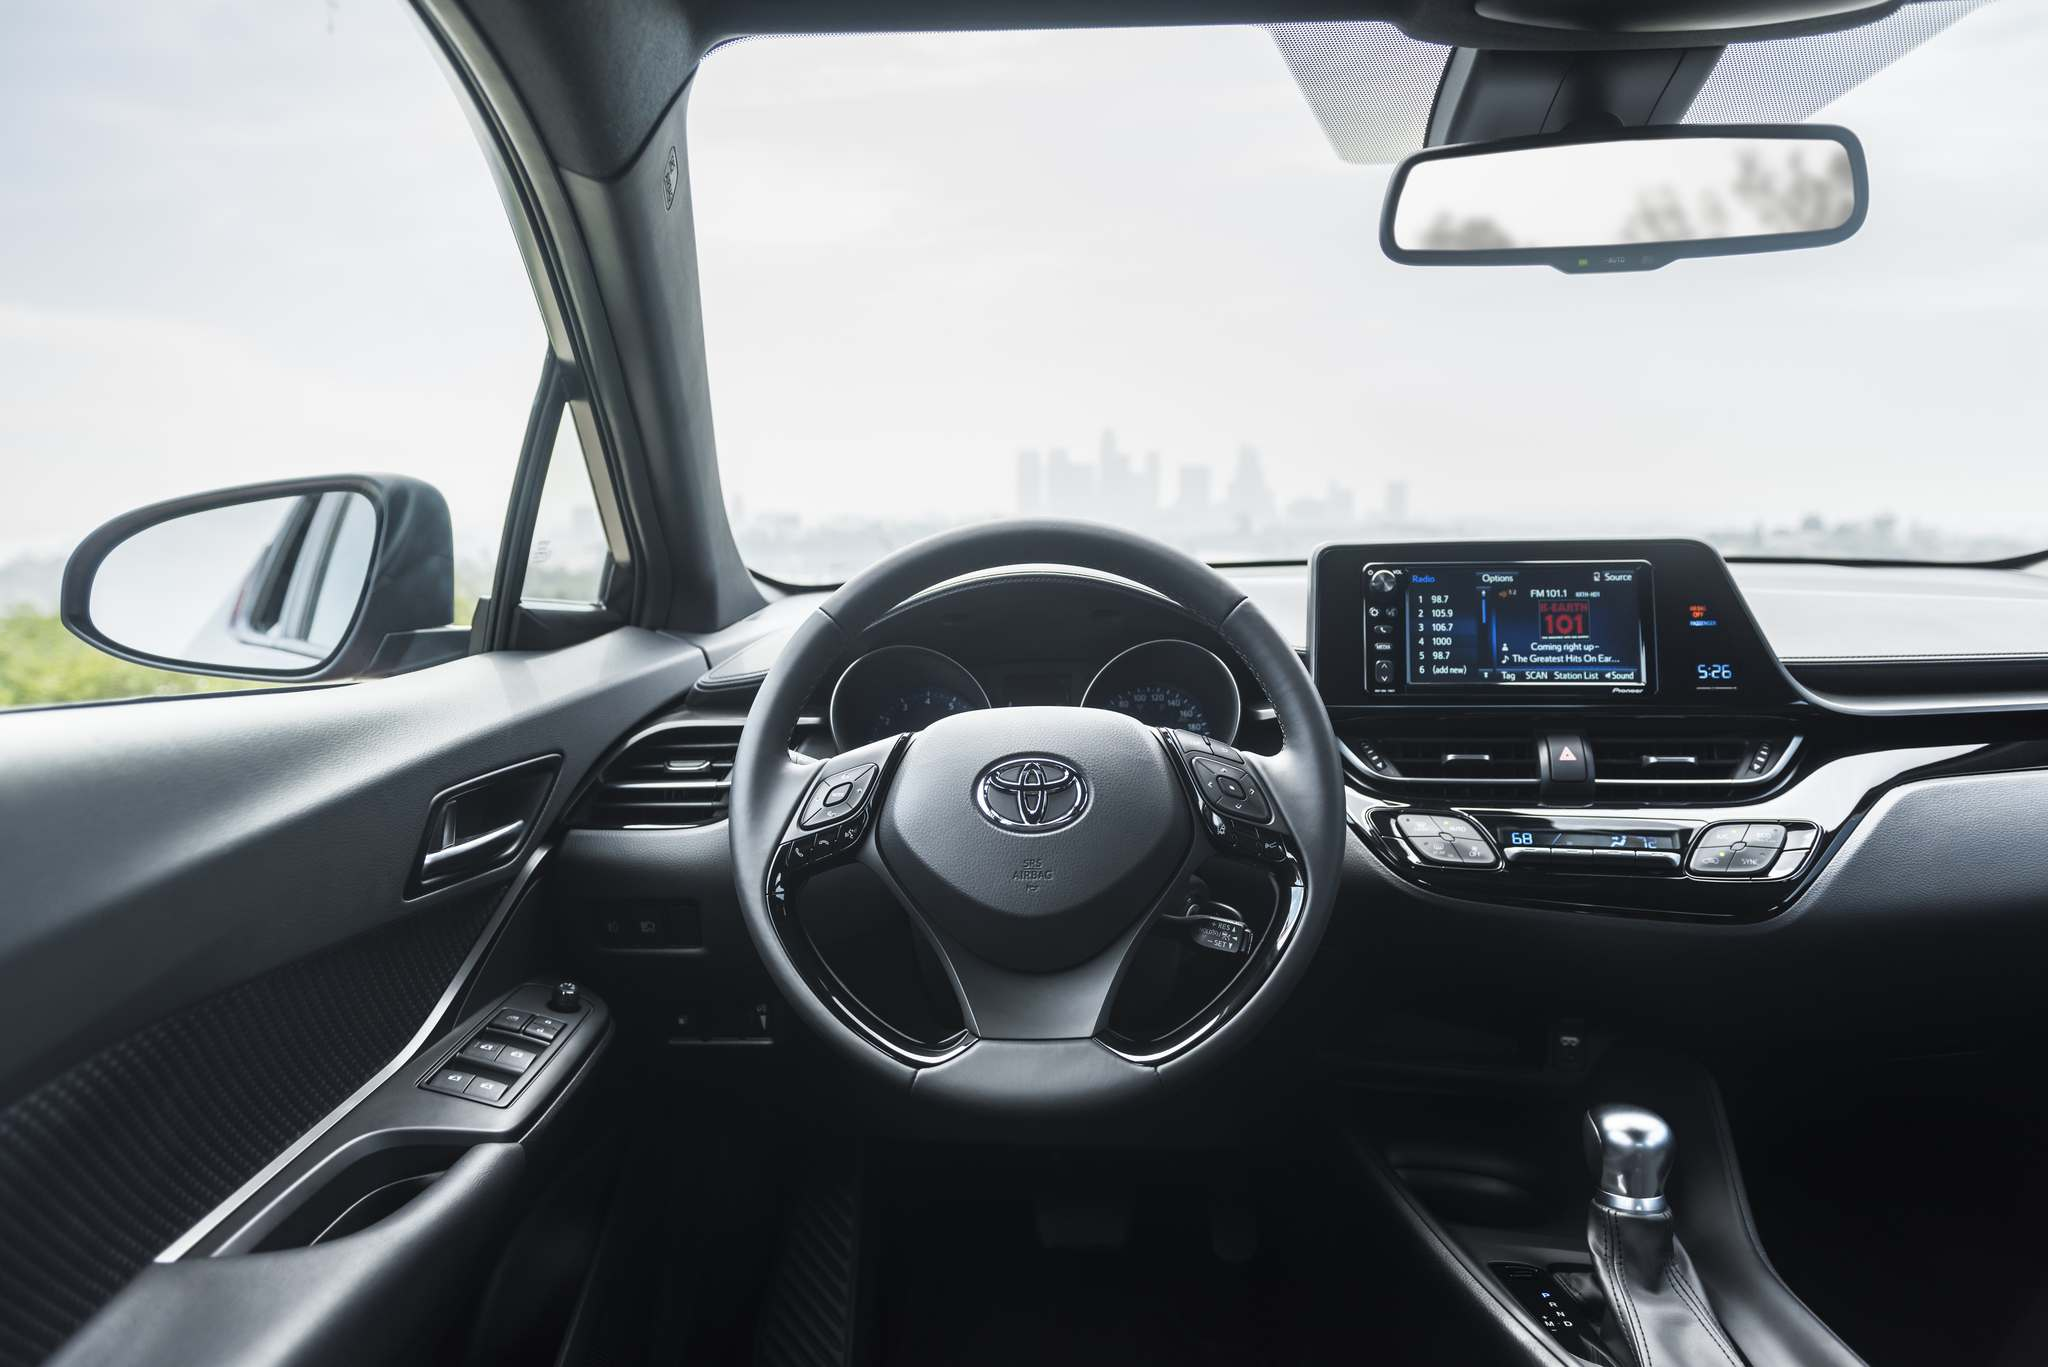 The C-HR's dashboard design is stylish by simplicity, a break from the usual pileup of textures and lines in other Toyota products.